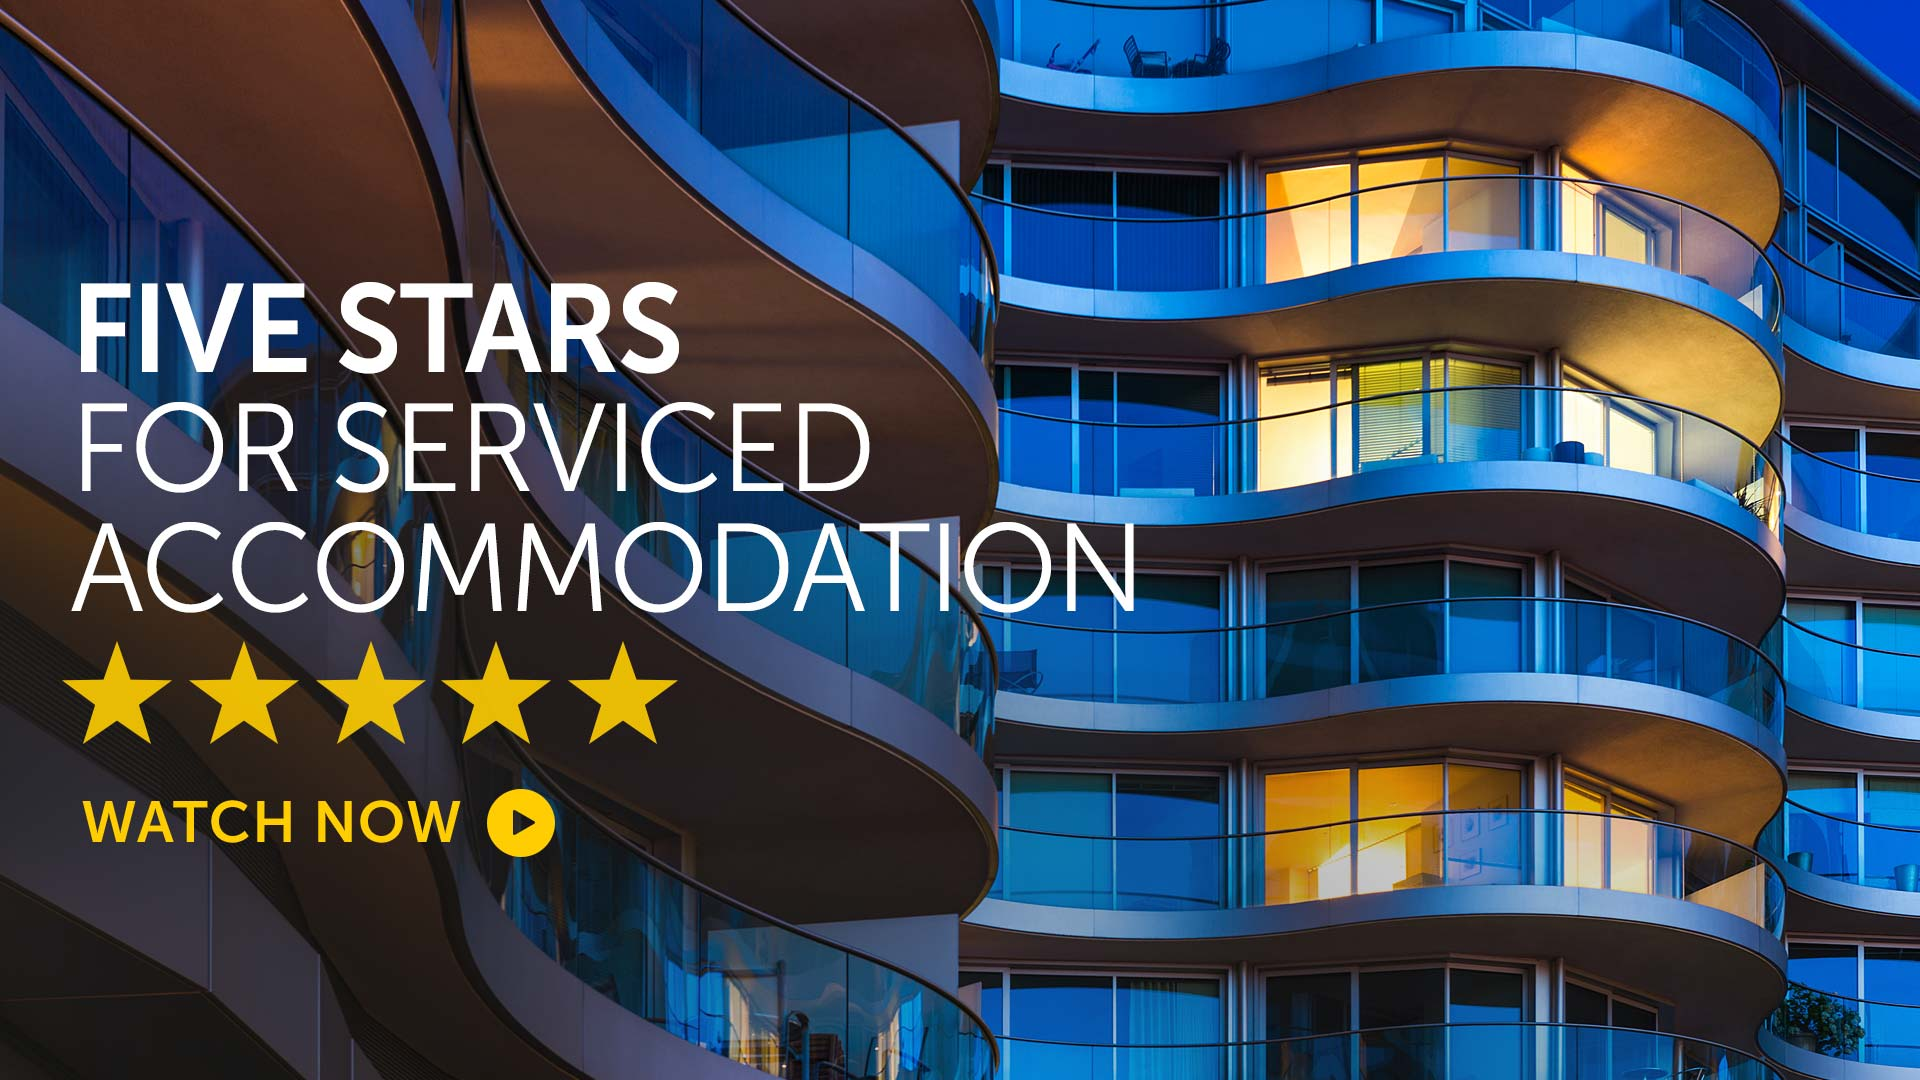 Briefing: Serviced Accommodation gets five-star recognition